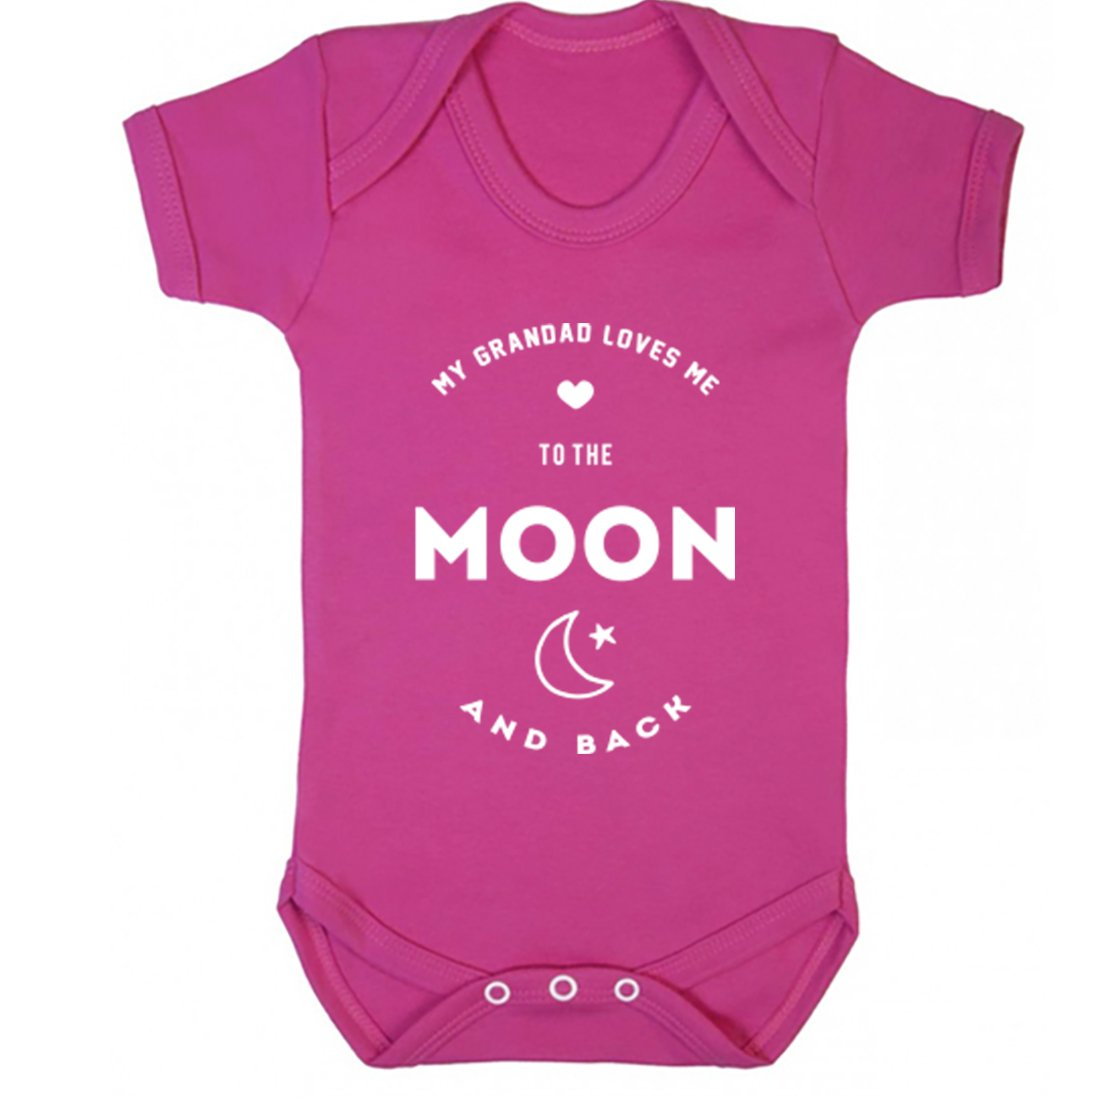 Illustrated Identity My Grandad Loves Me To The Moon and Back Vest Boys Girls